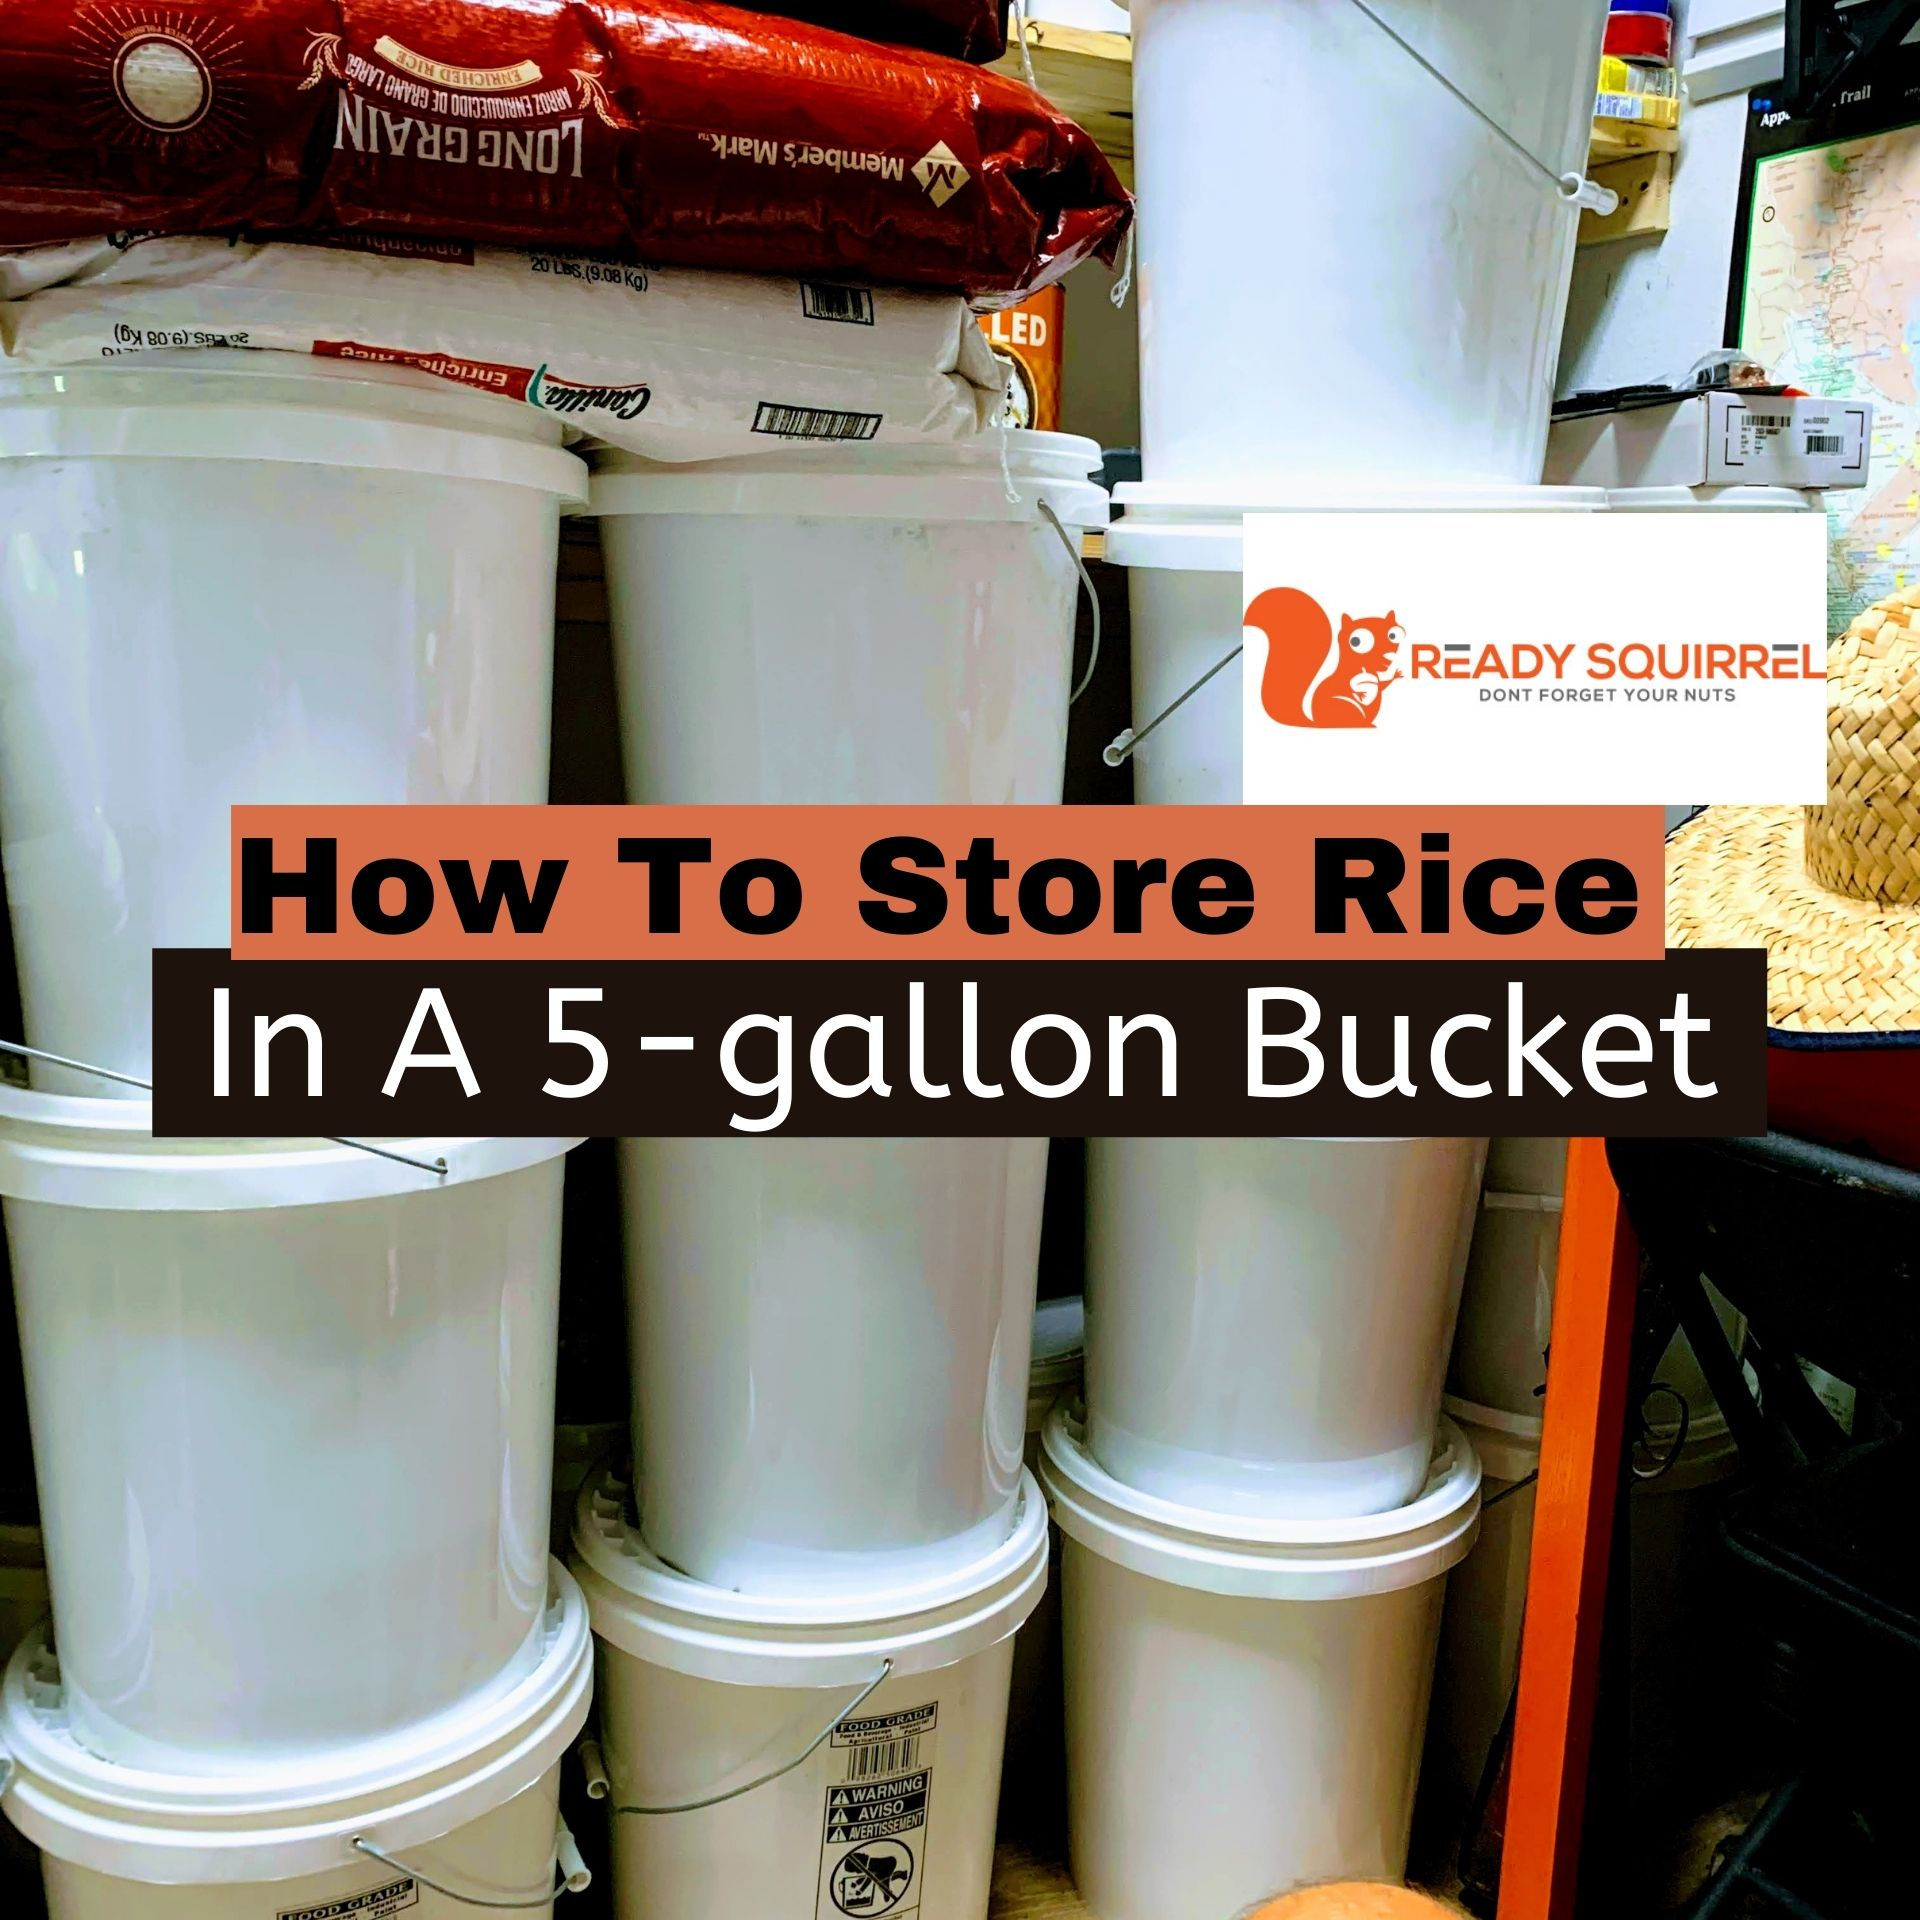 How To Store Rice In 5-gallon Buckets